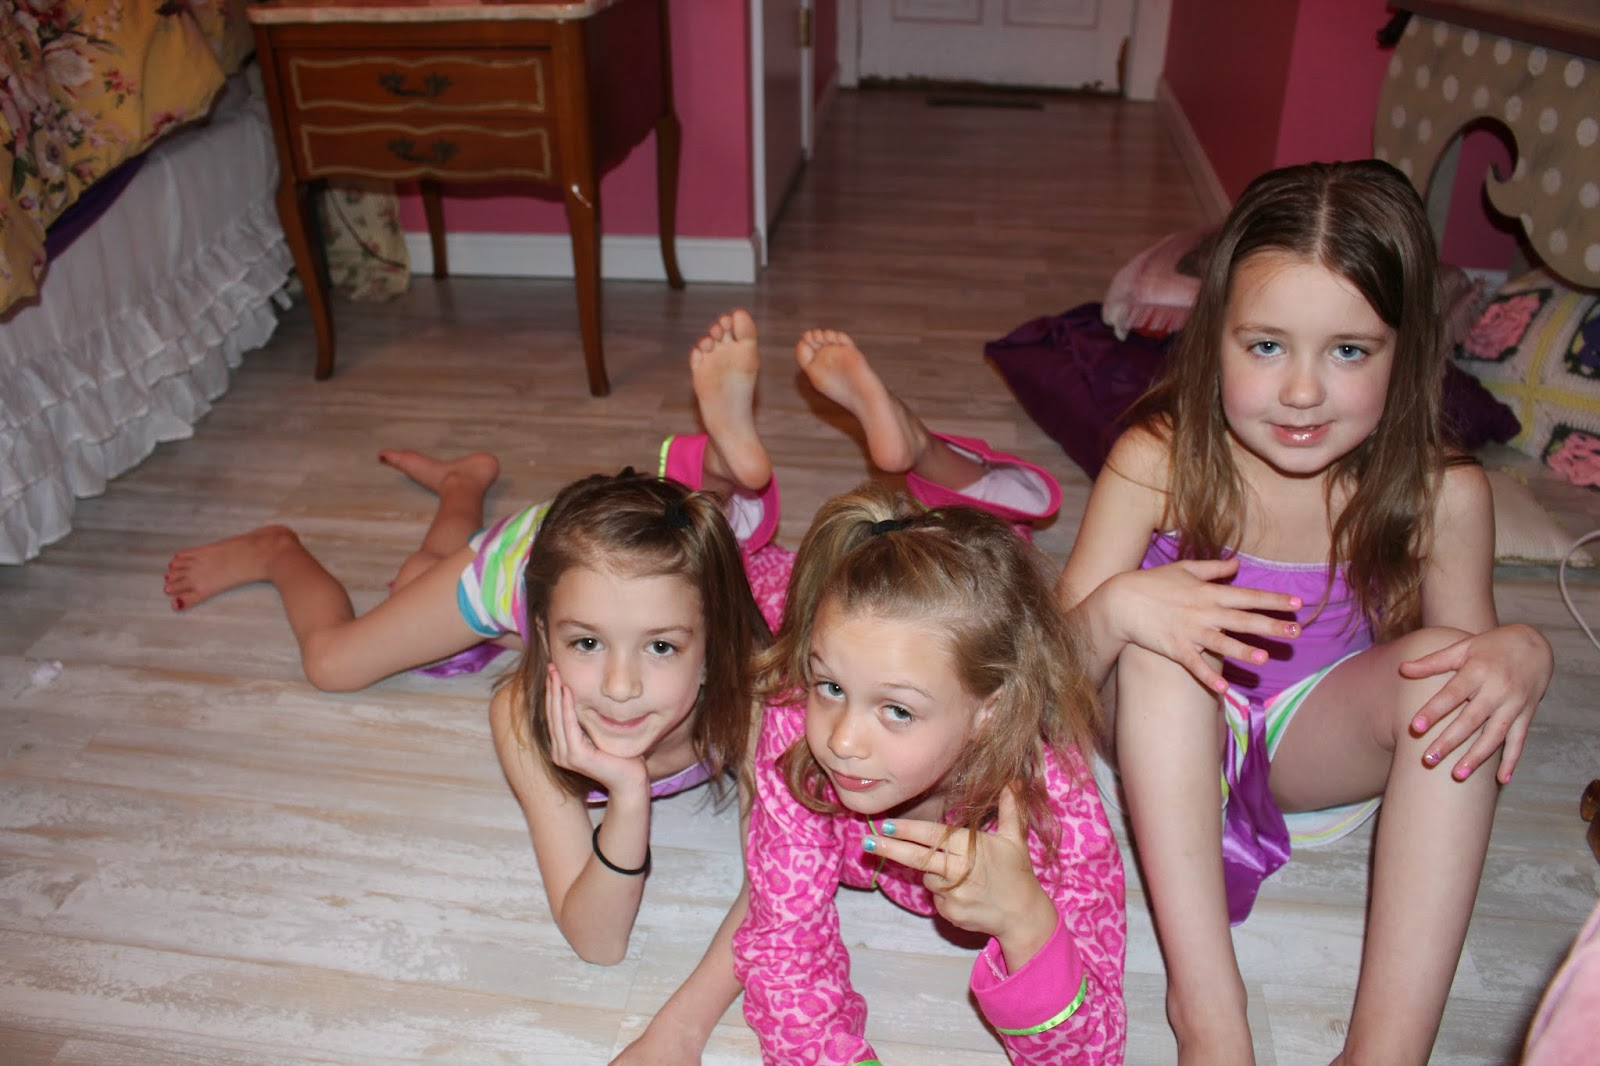 nude little girls at sleepover